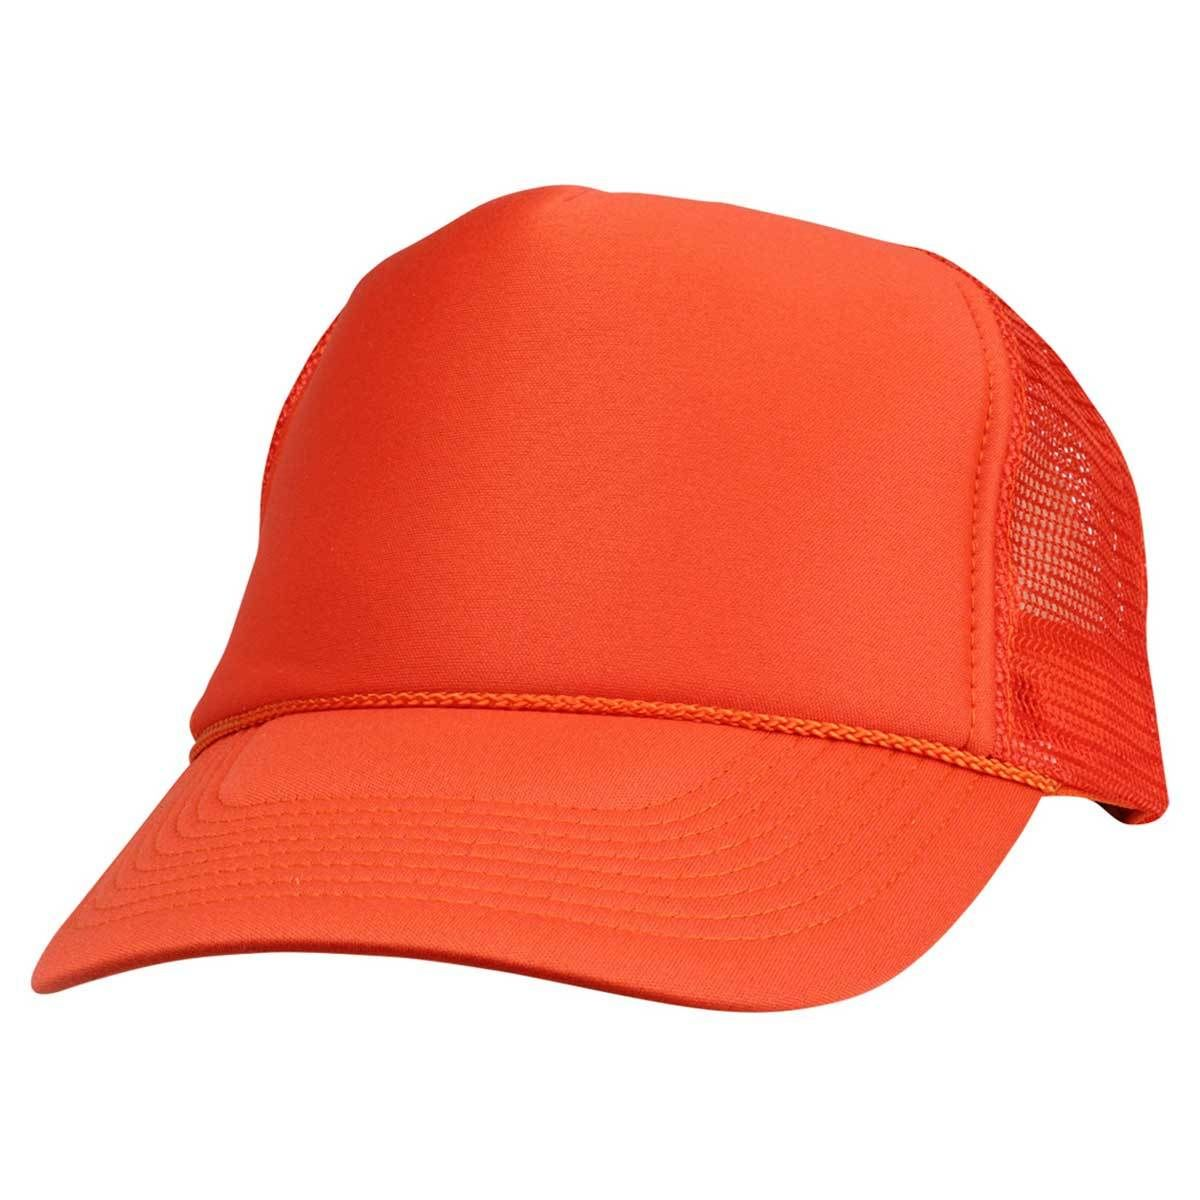 34c77e84 DALIX Trucker Cap Mesh Hat with Solid Colors and Adjustable Strap and Small  Braid